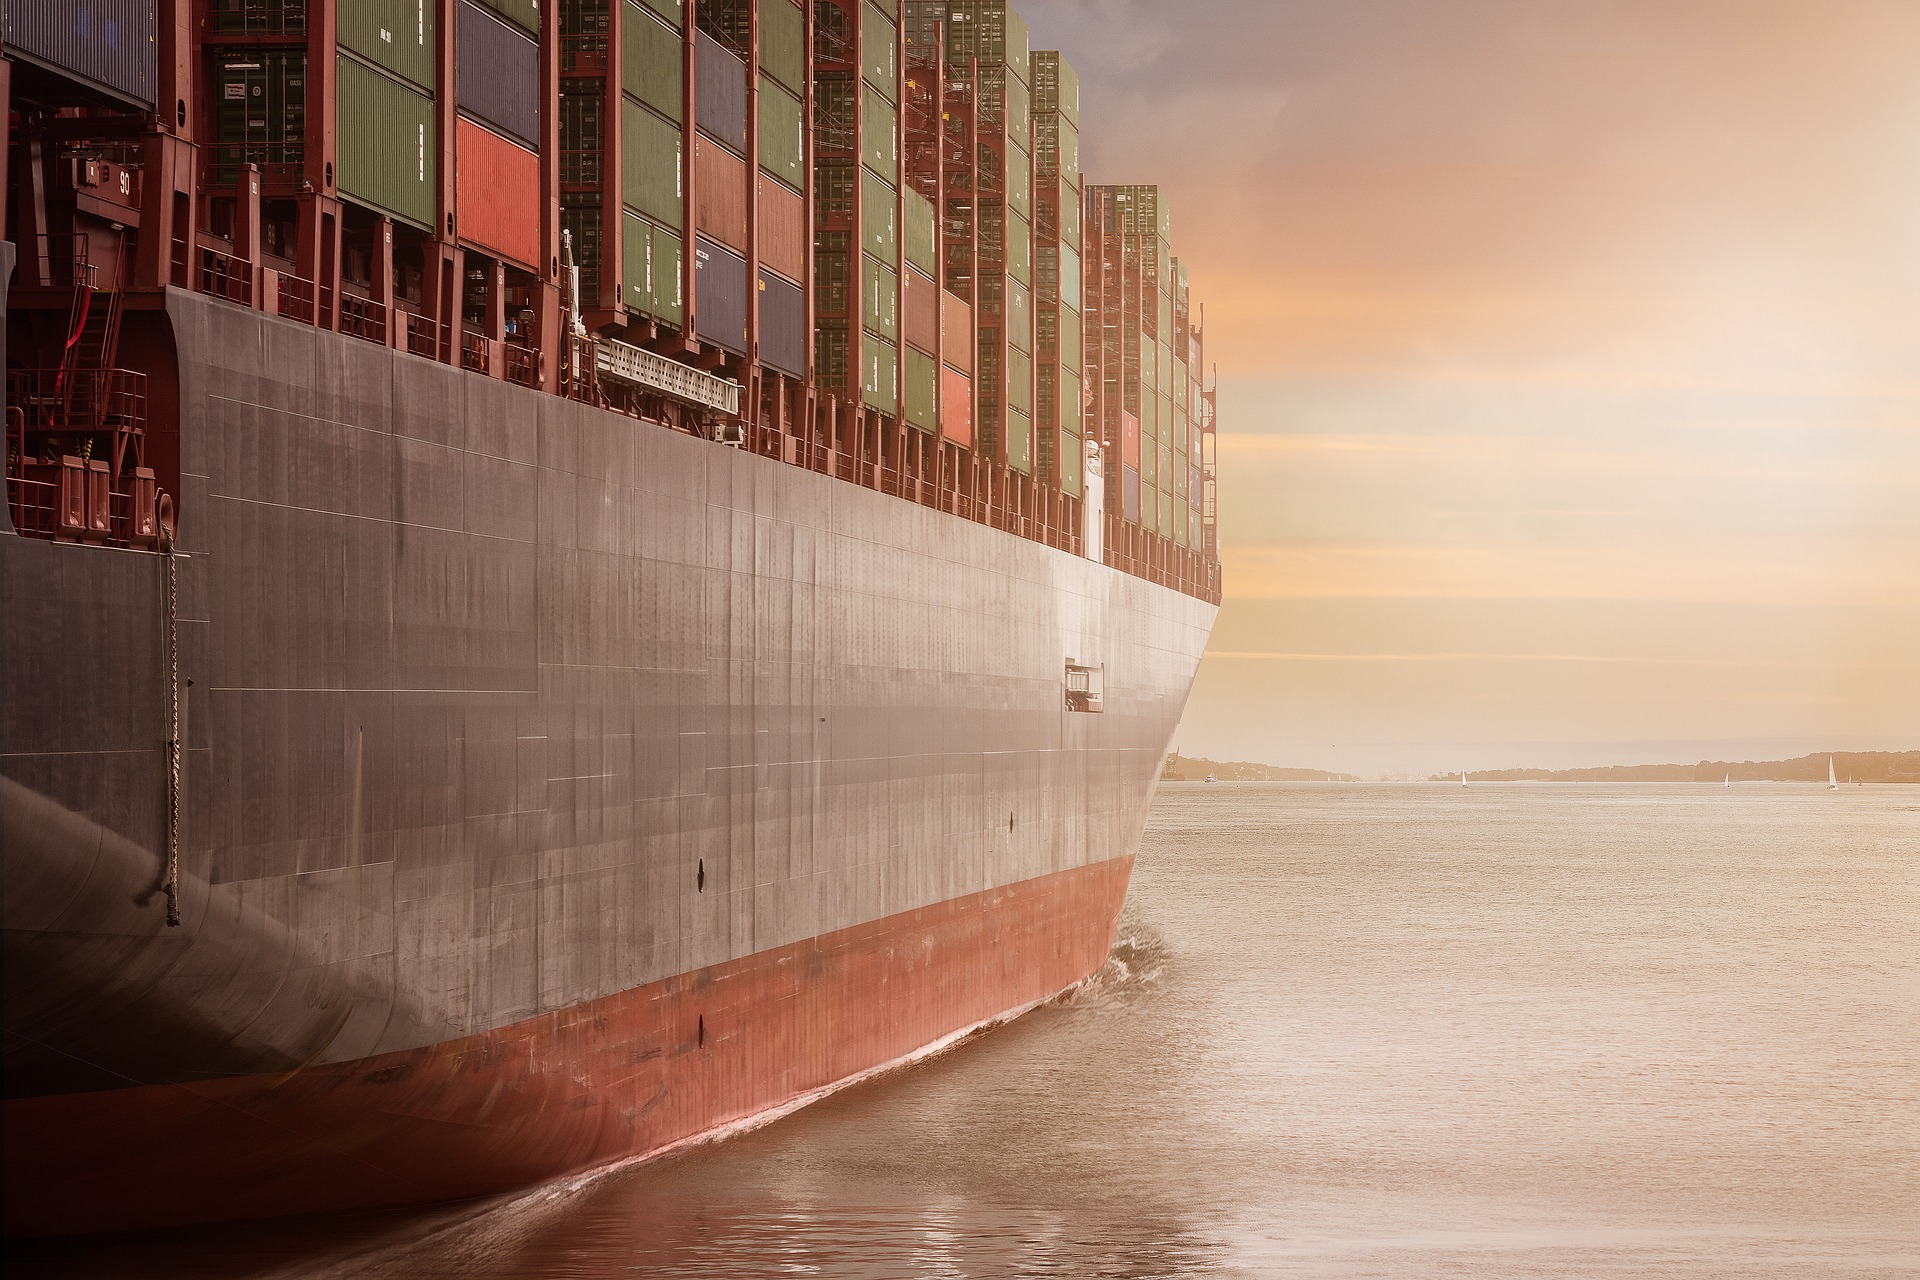 sea freight container vessel